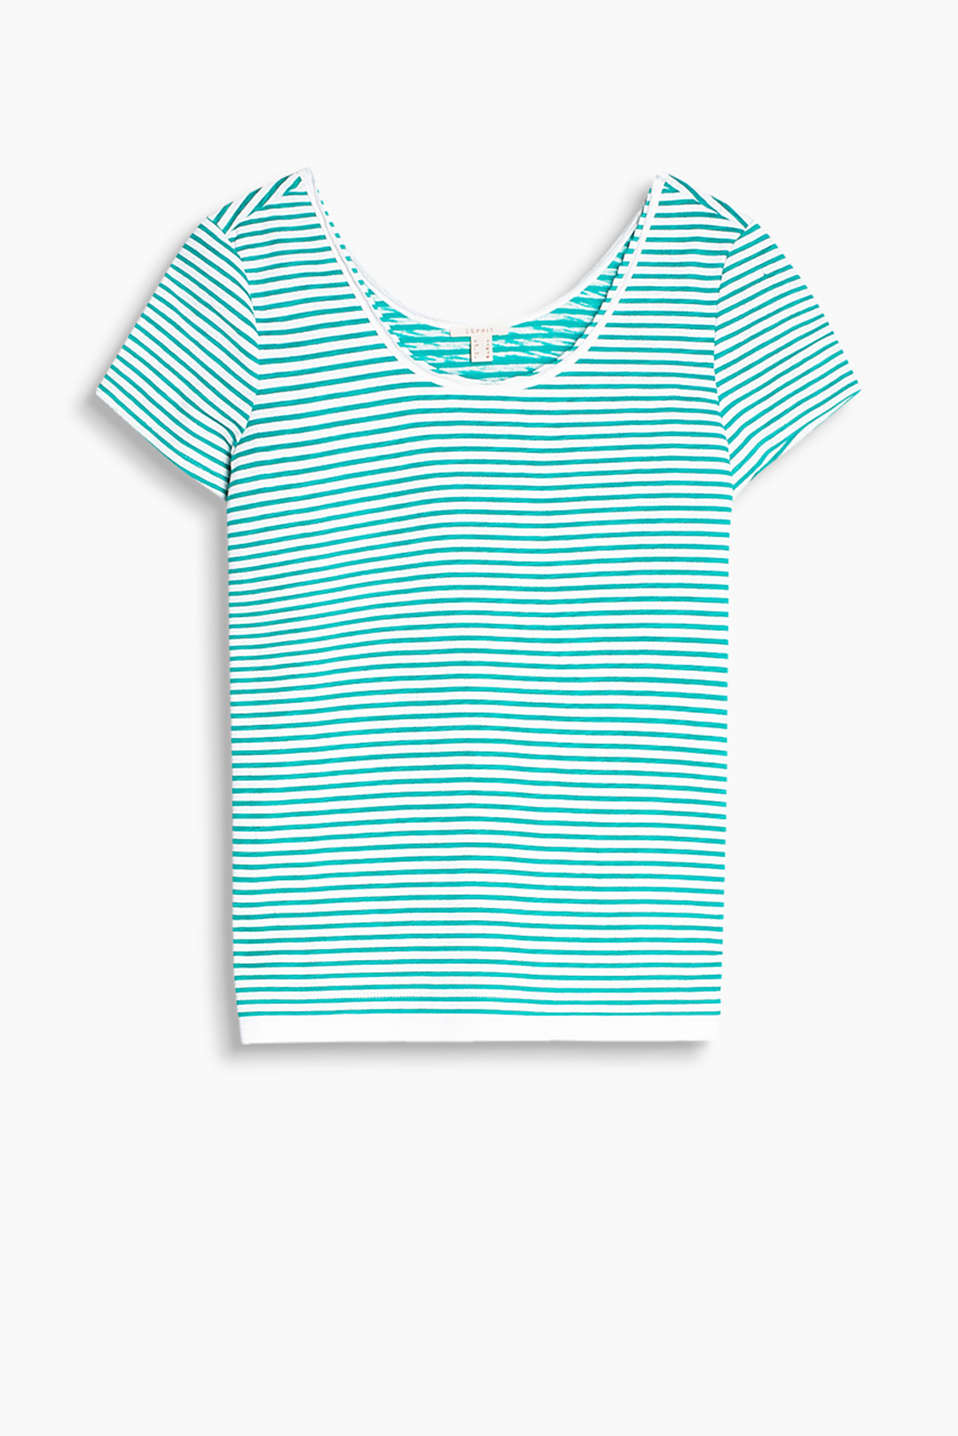 Textured striped T-shirt with an unfinished neckline and a layer hem, 100% cotton